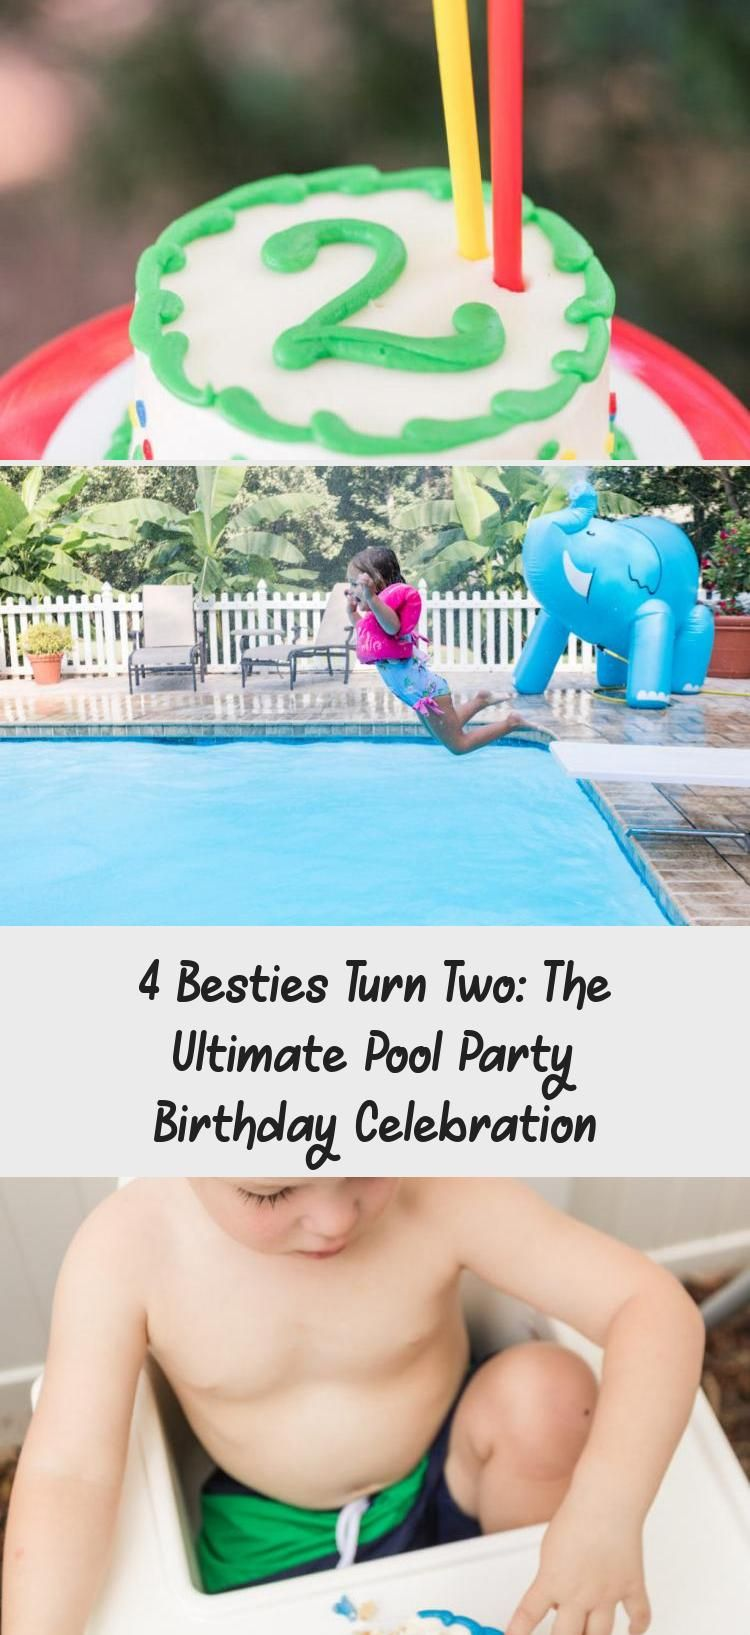 Need ideas for a toddler birthday party theme this summer